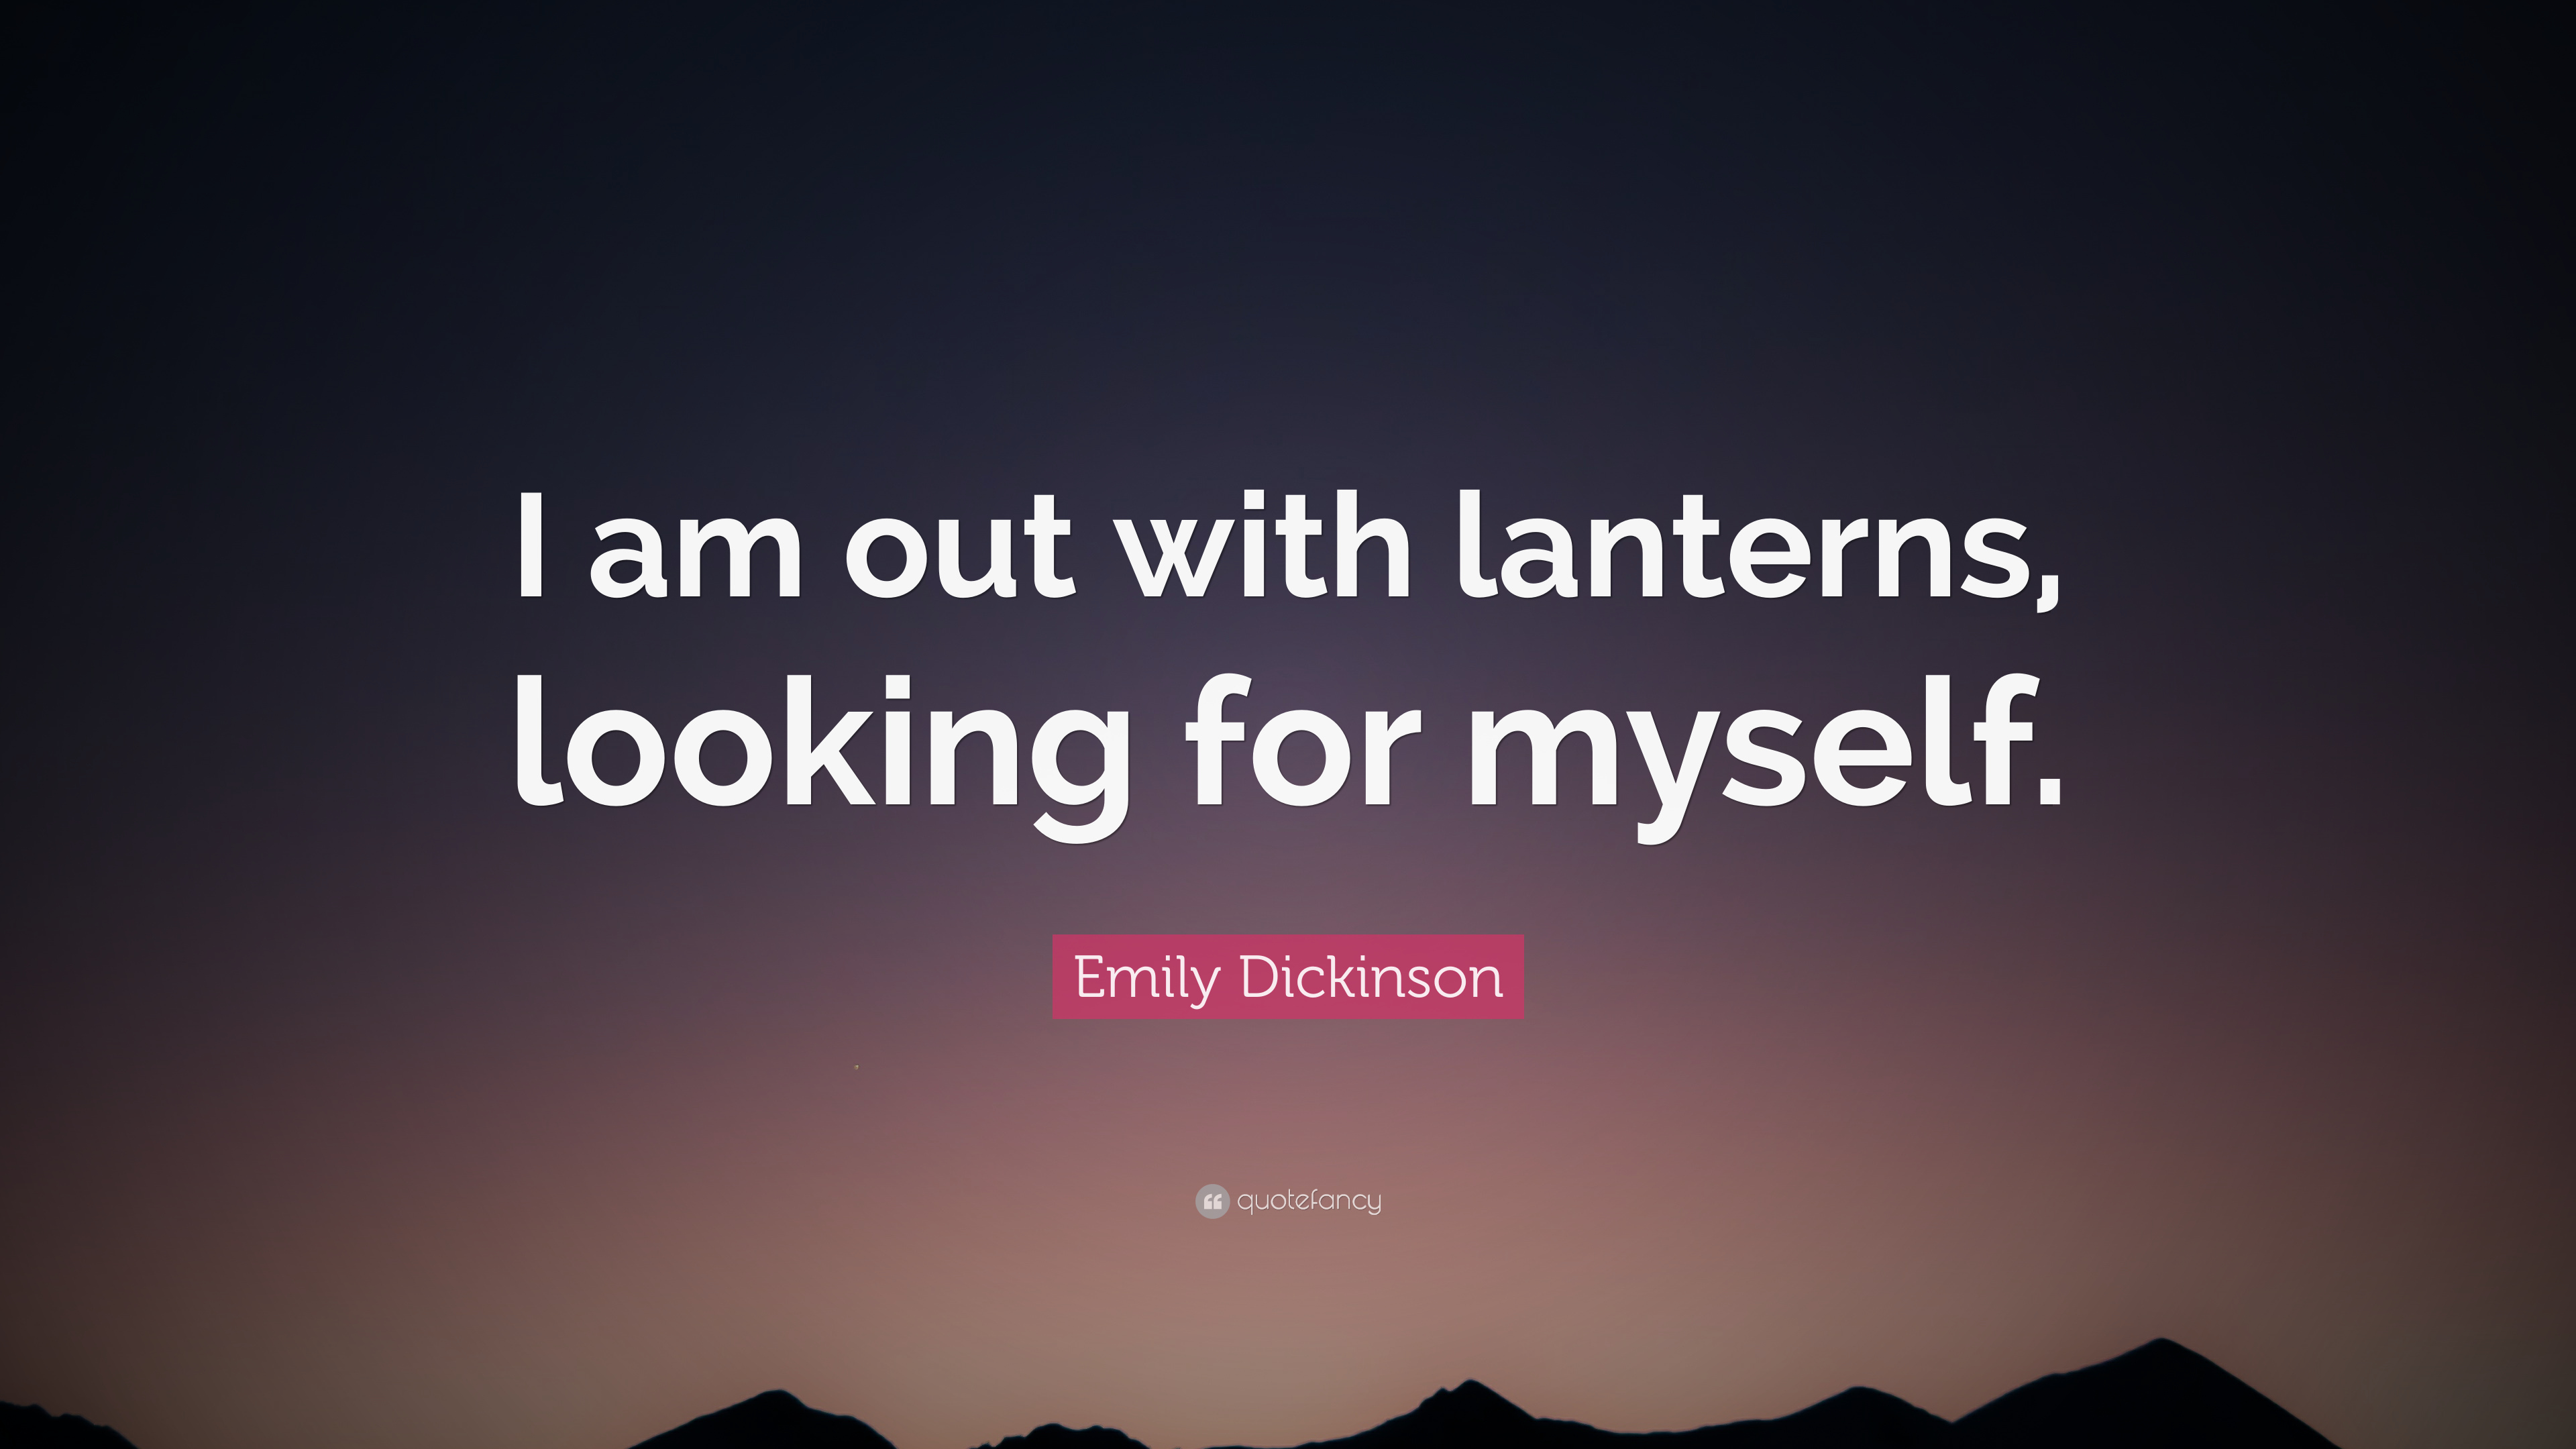 emily dickinson quote i am out with lanterns looking for myself